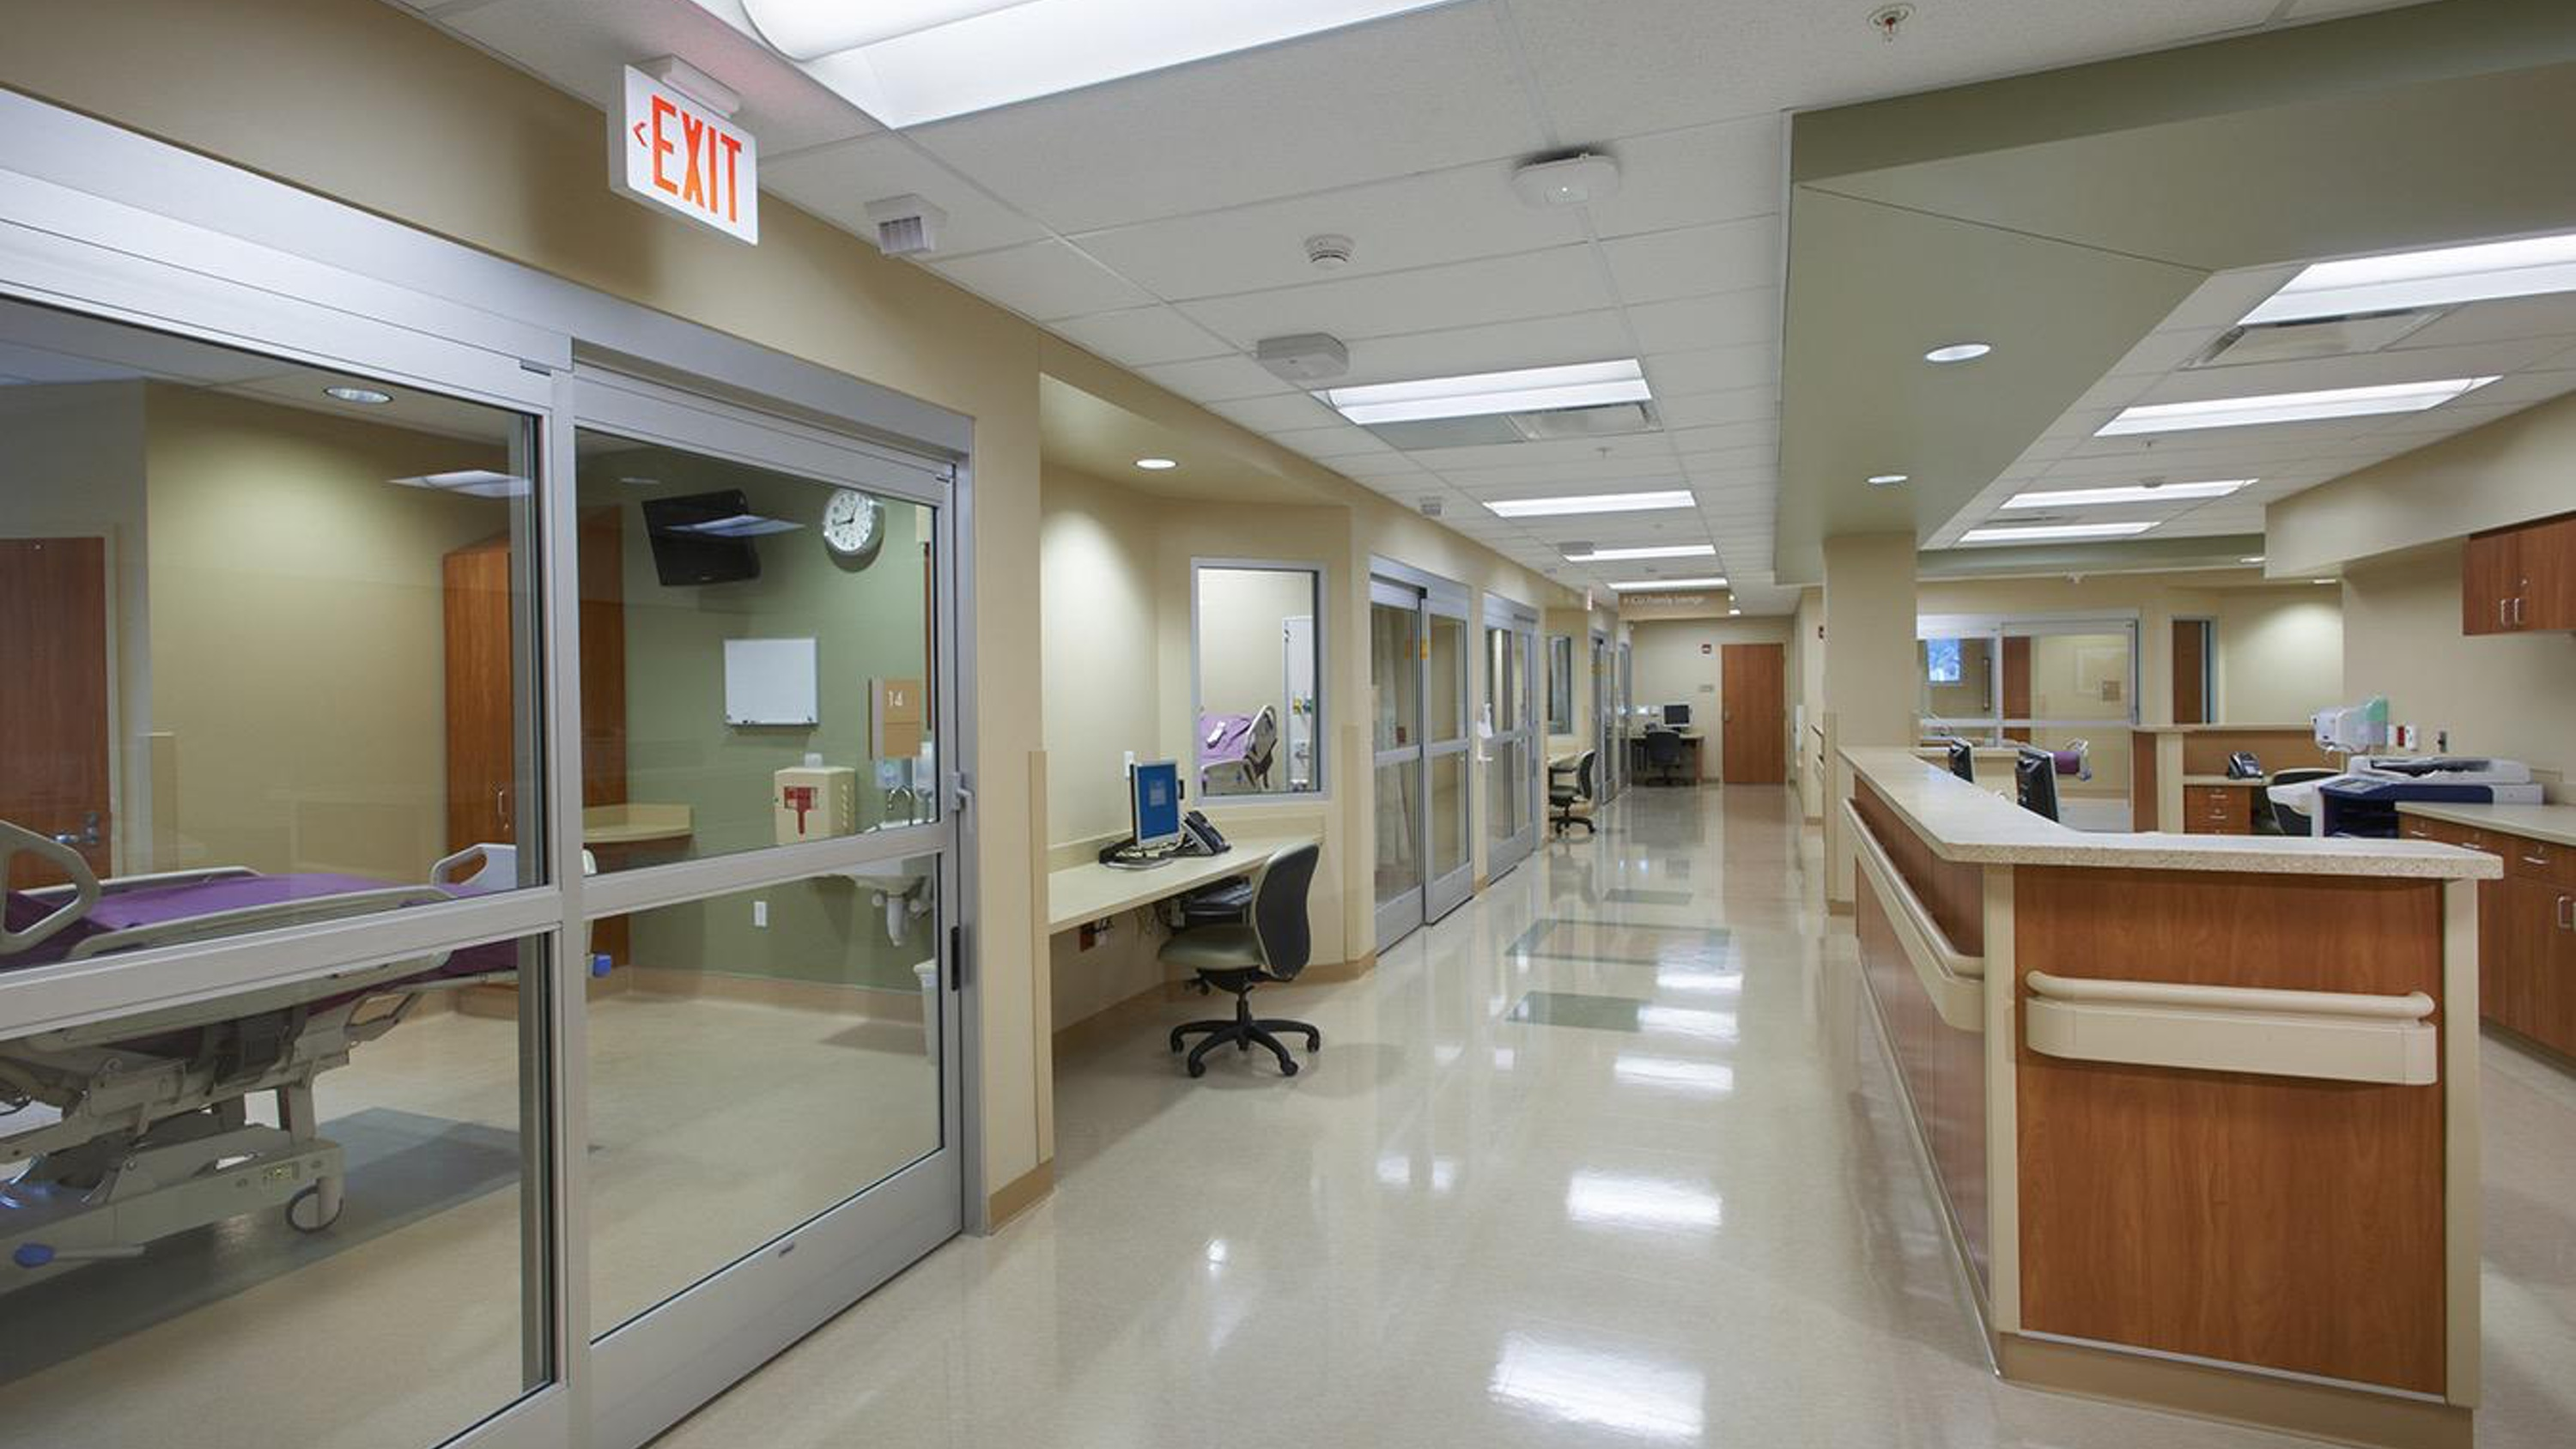 Chestnut hill hospital2